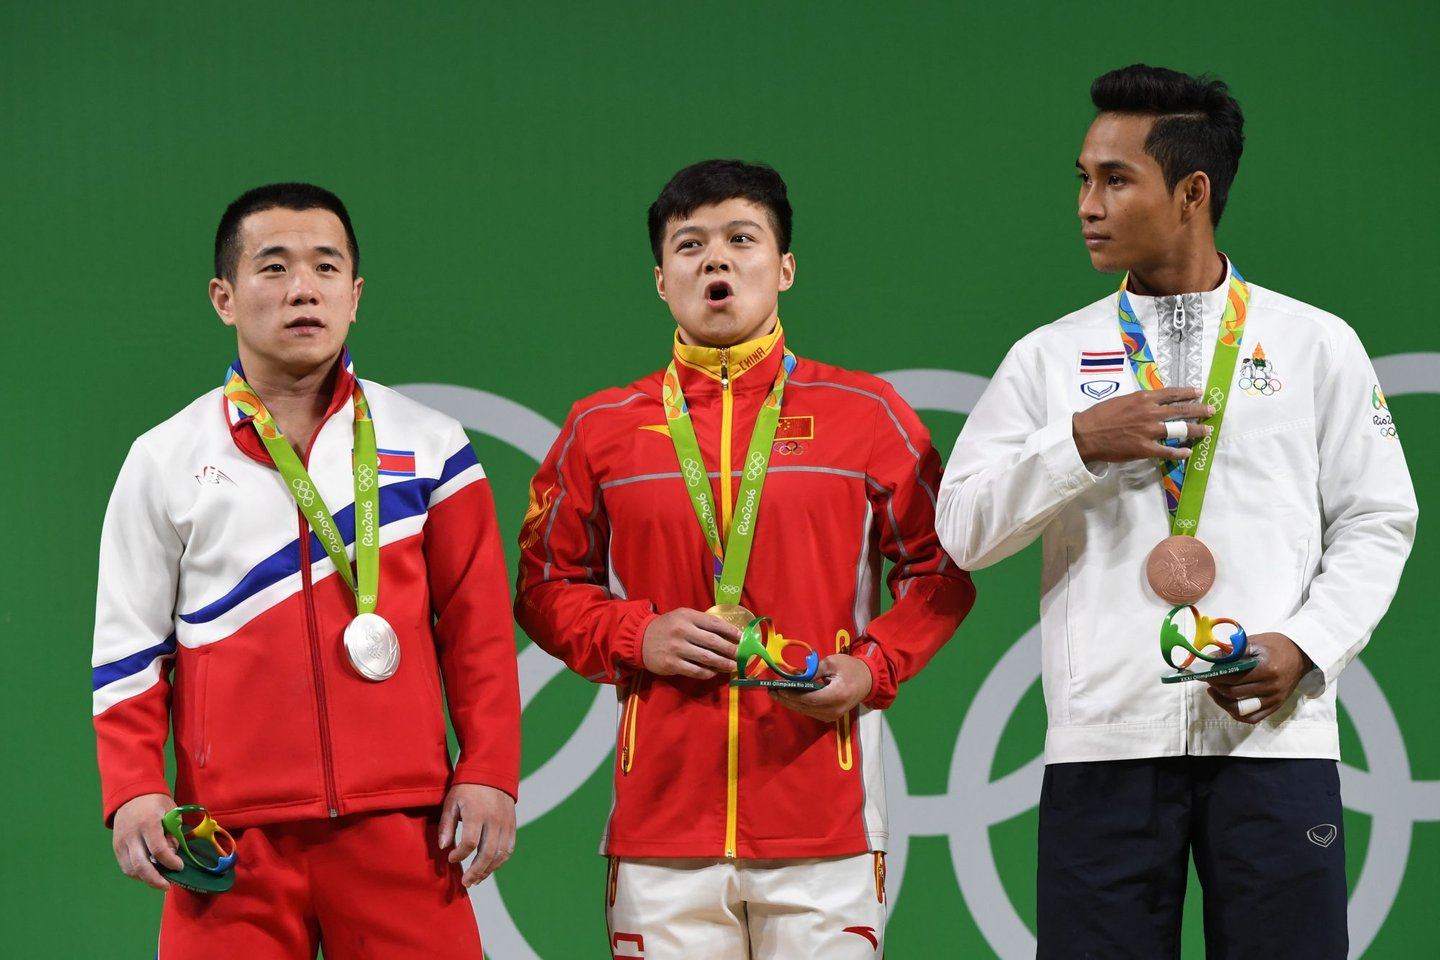 China's gold medallist Long Qingquan (C, North Korea's silver medallist Om Yun Chol (L) and Thailand's bronze medalist Sinphet Kruaithong pose with their medals on the podium during the men's 56kg weightlifting event at the Rio 2016 Olympic games in Rio de Janeiro on August 7, 2016. / AFP / GOH Chai Hin (Photo credit should read GOH CHAI HIN/AFP/Getty Images)